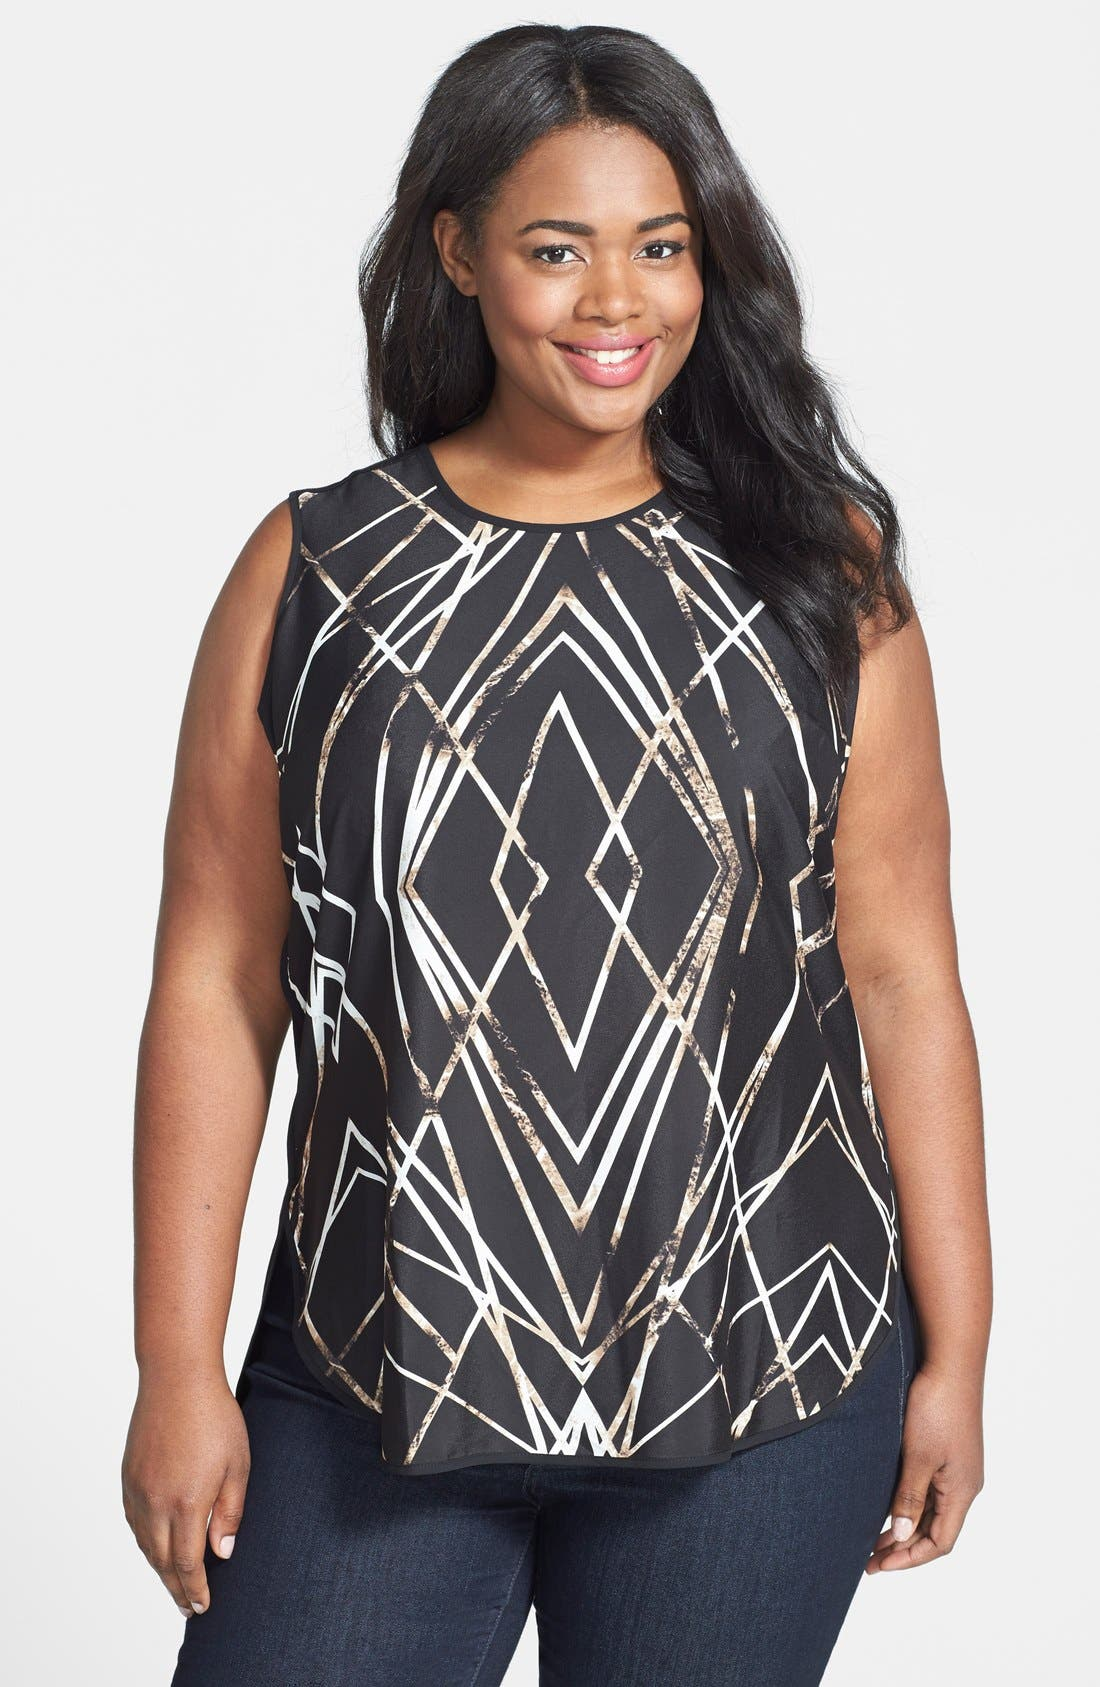 Main Image - Vince Camuto 'Modern Web' Sleeveless Top (Plus Size)